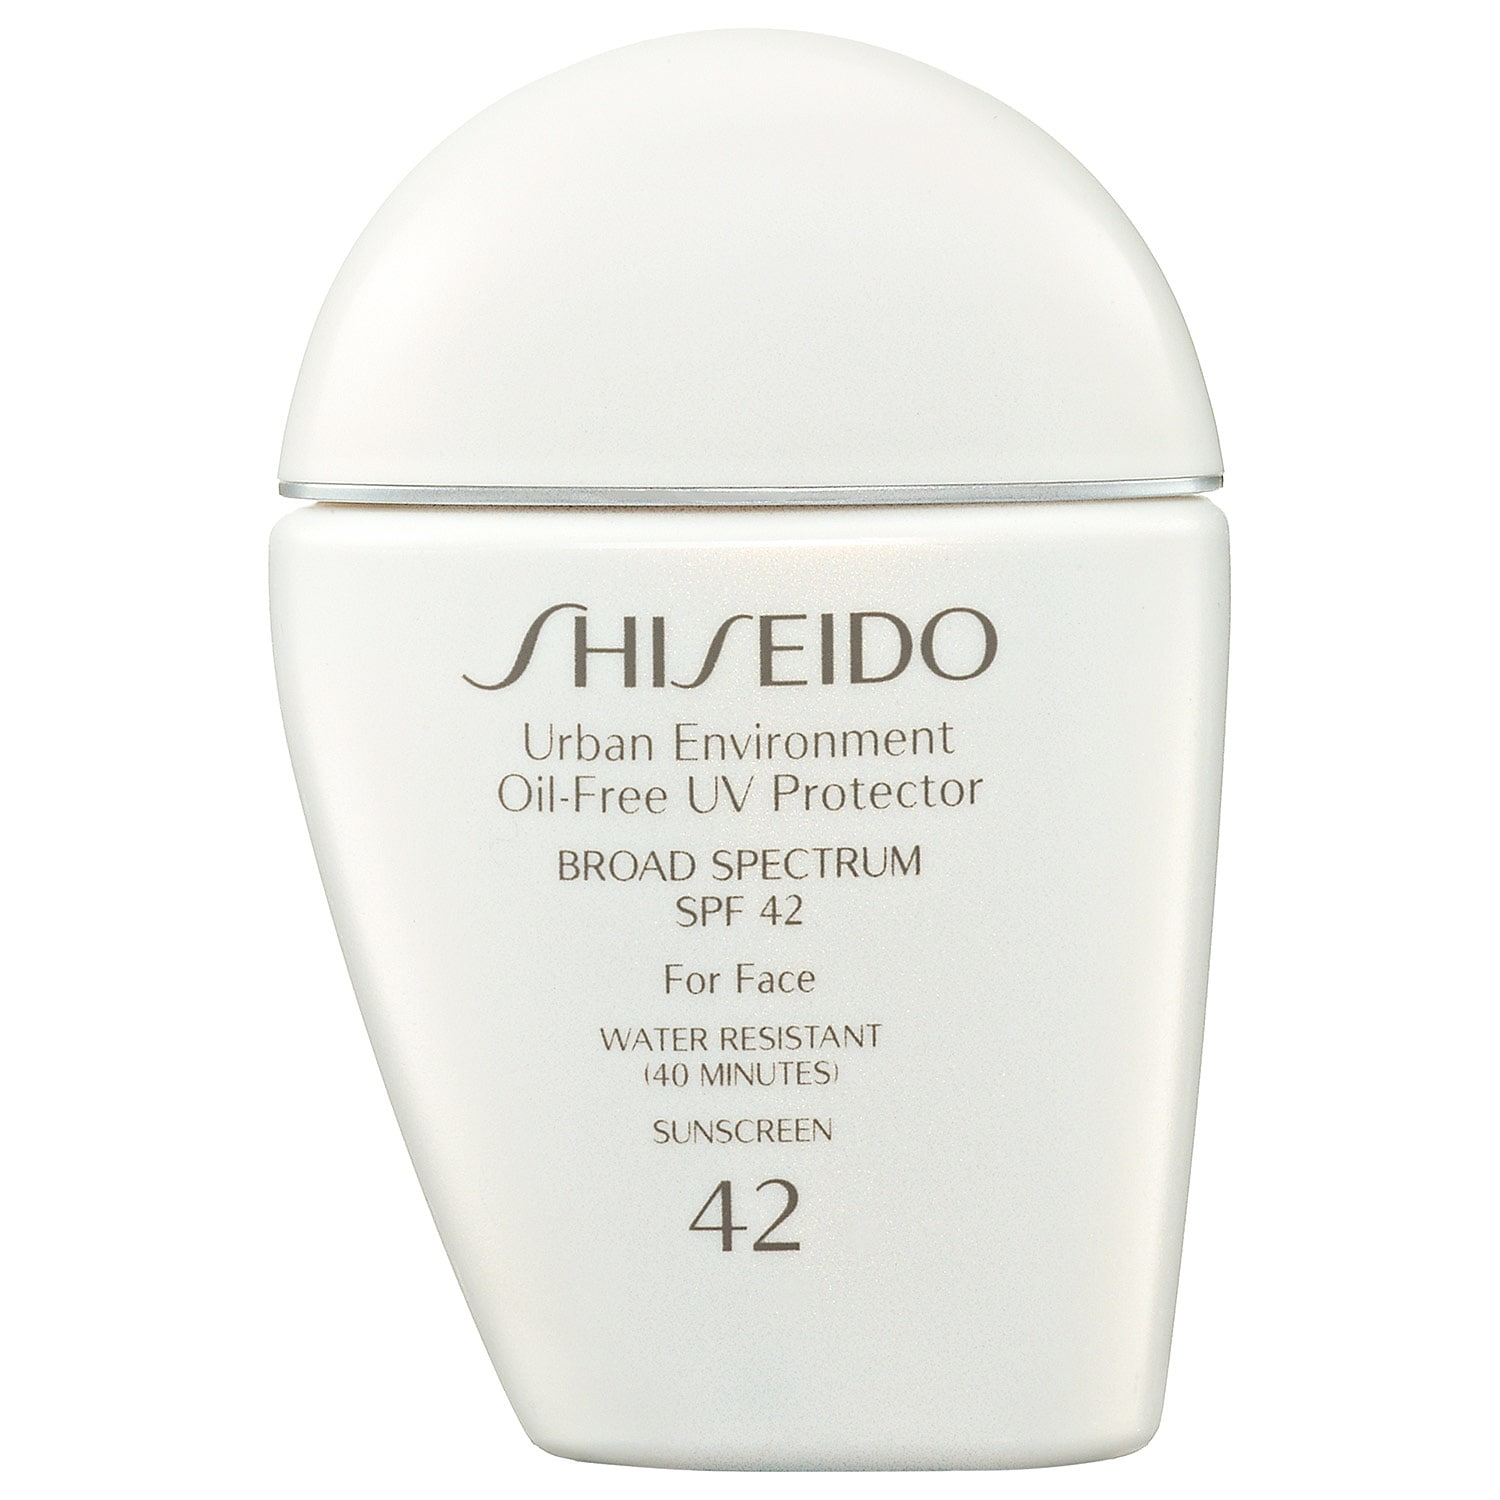 Shiseido Urban Environment Oil Free Uv Protector Broad Spectrum Face Sunscreen Spf 42 Ingredients And Reviews Seknd